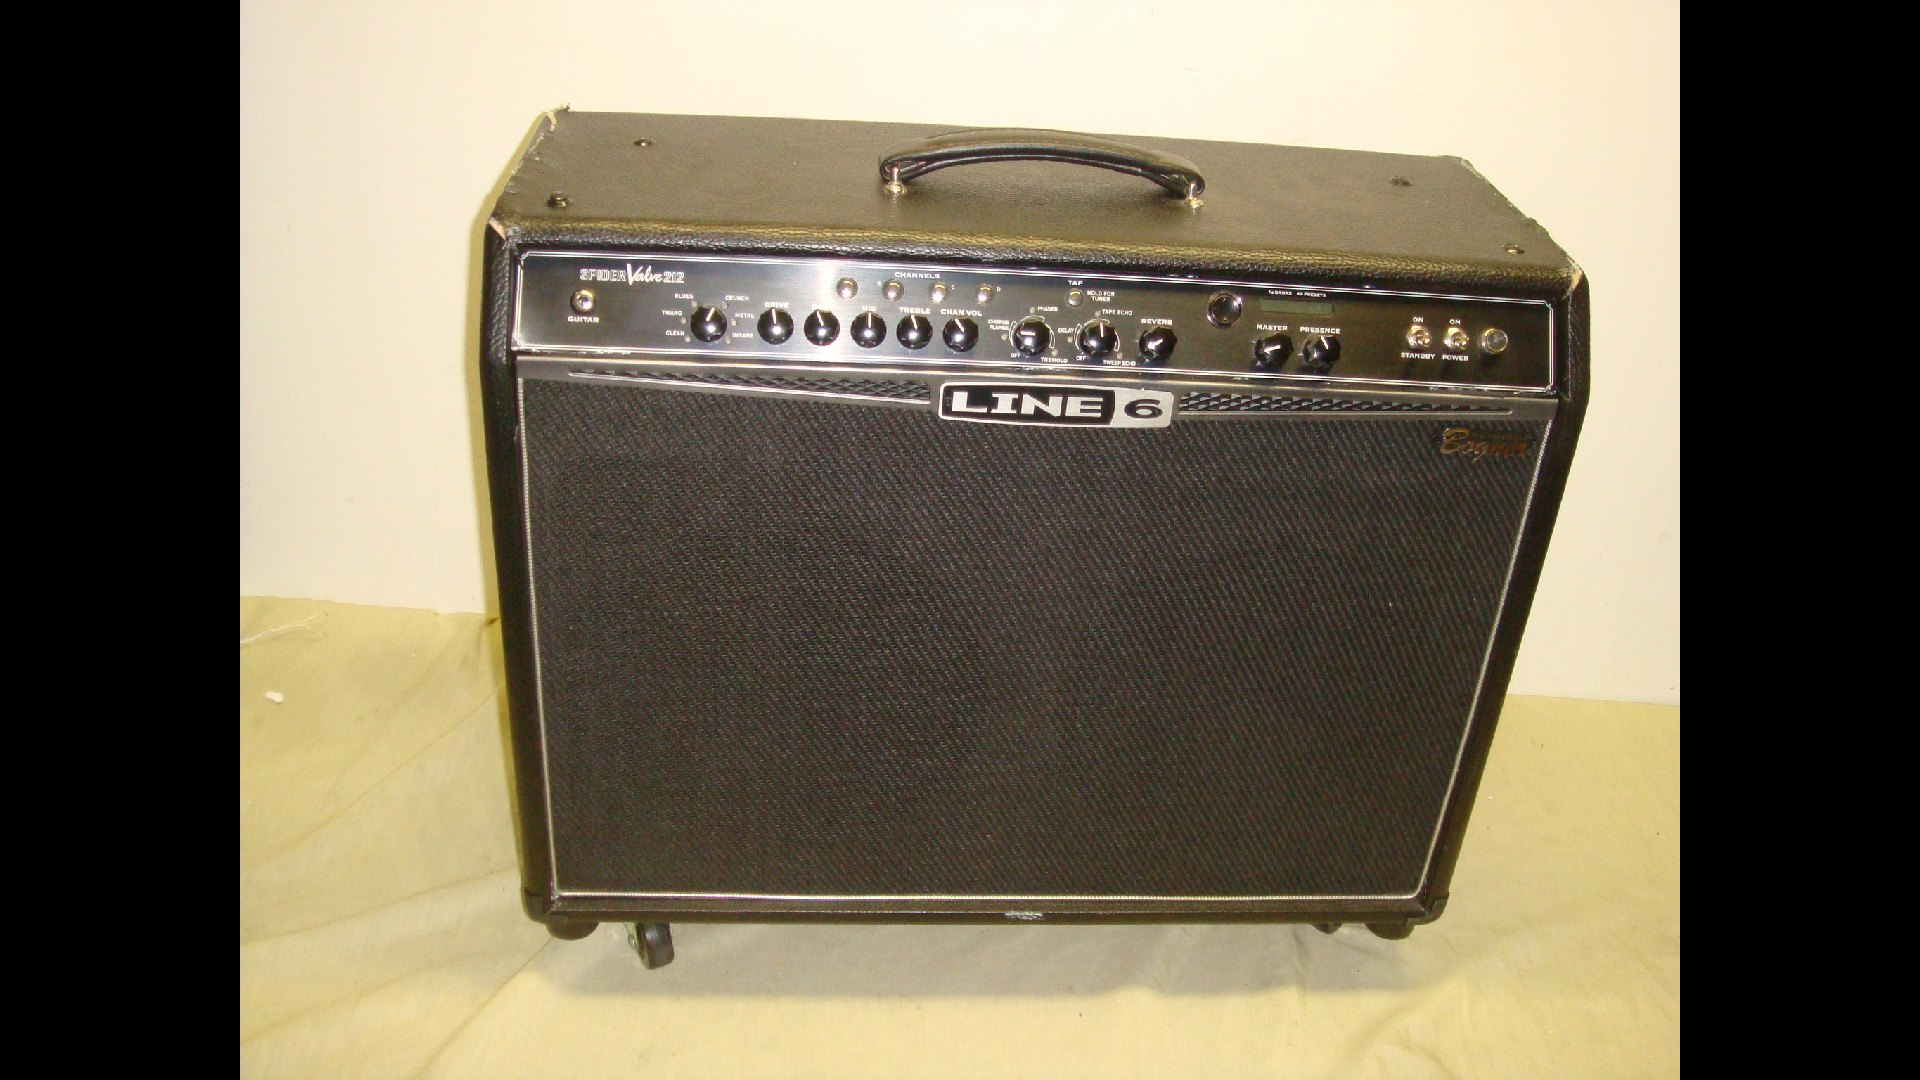 line 6 bogner spider valve 212 40w guitar combo amp amplifier read ebay. Black Bedroom Furniture Sets. Home Design Ideas